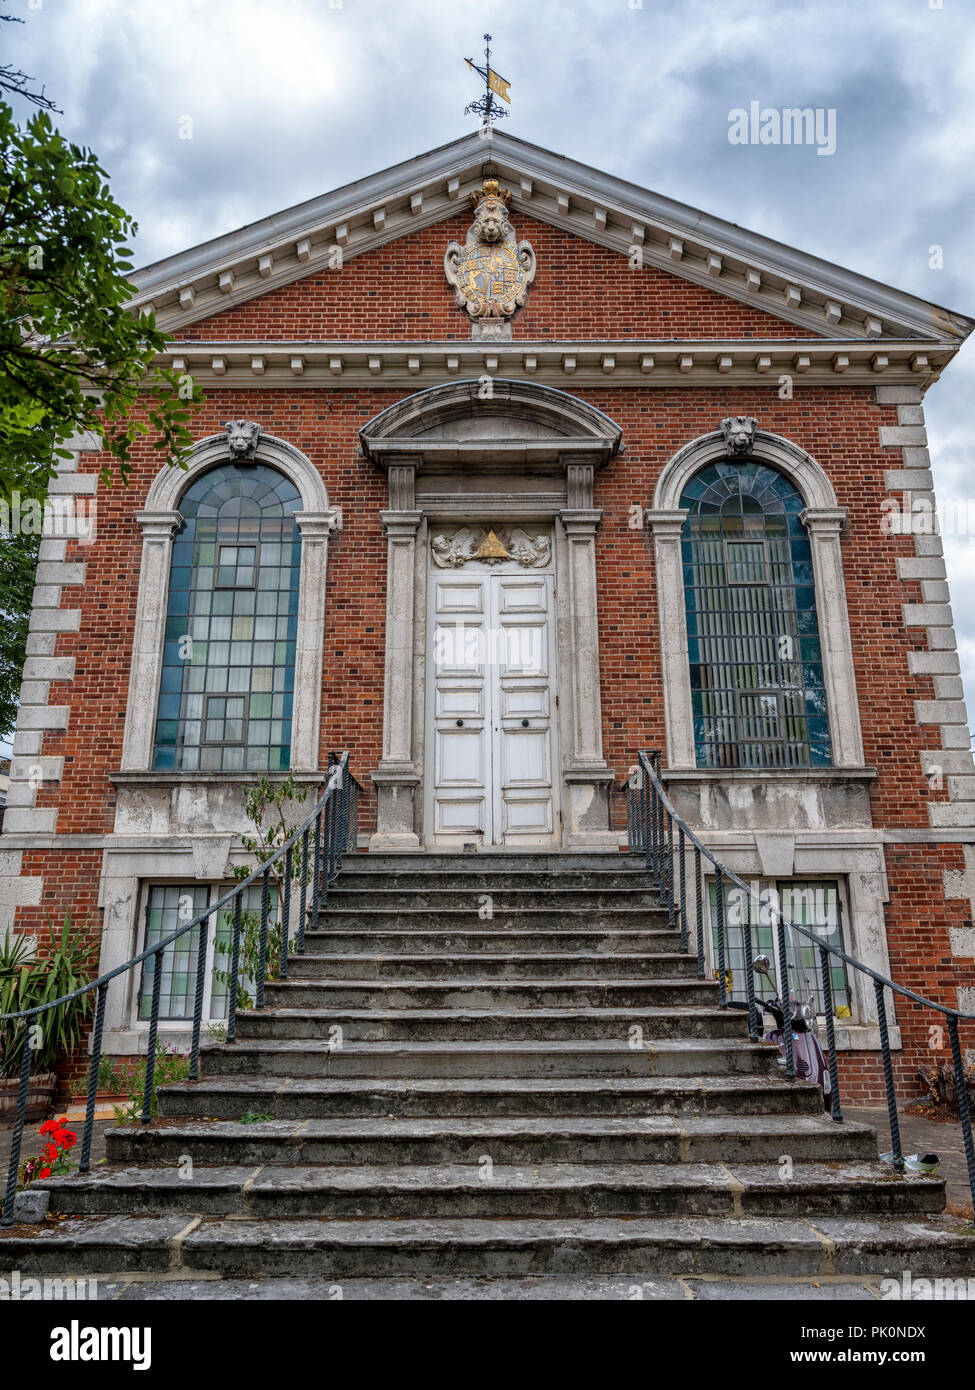 Grade I listed church of Trinity Green after the style of Sir Christopher Wren built in 1695 as part of Alms Houses for mariners in Whitechapel - Stock Image